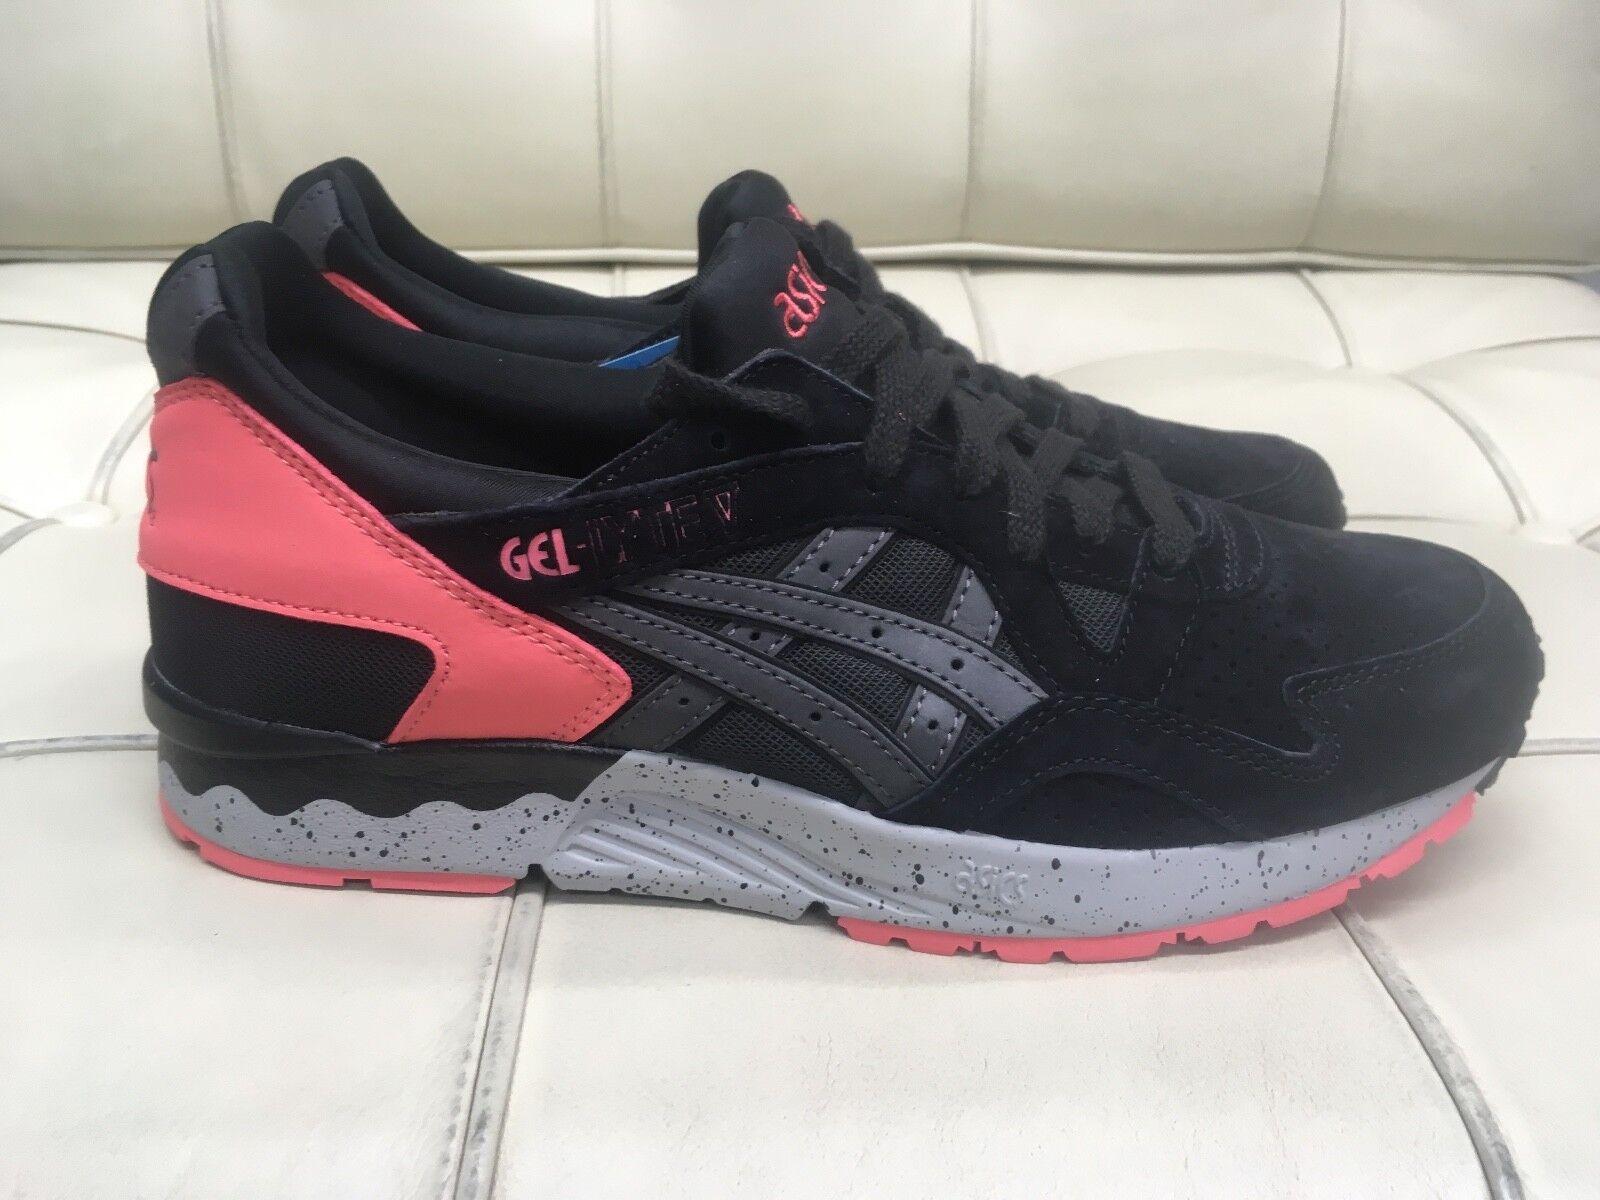 Asics Men's Gel Lyte 5 - Infrared/Black - Men's Size: 8